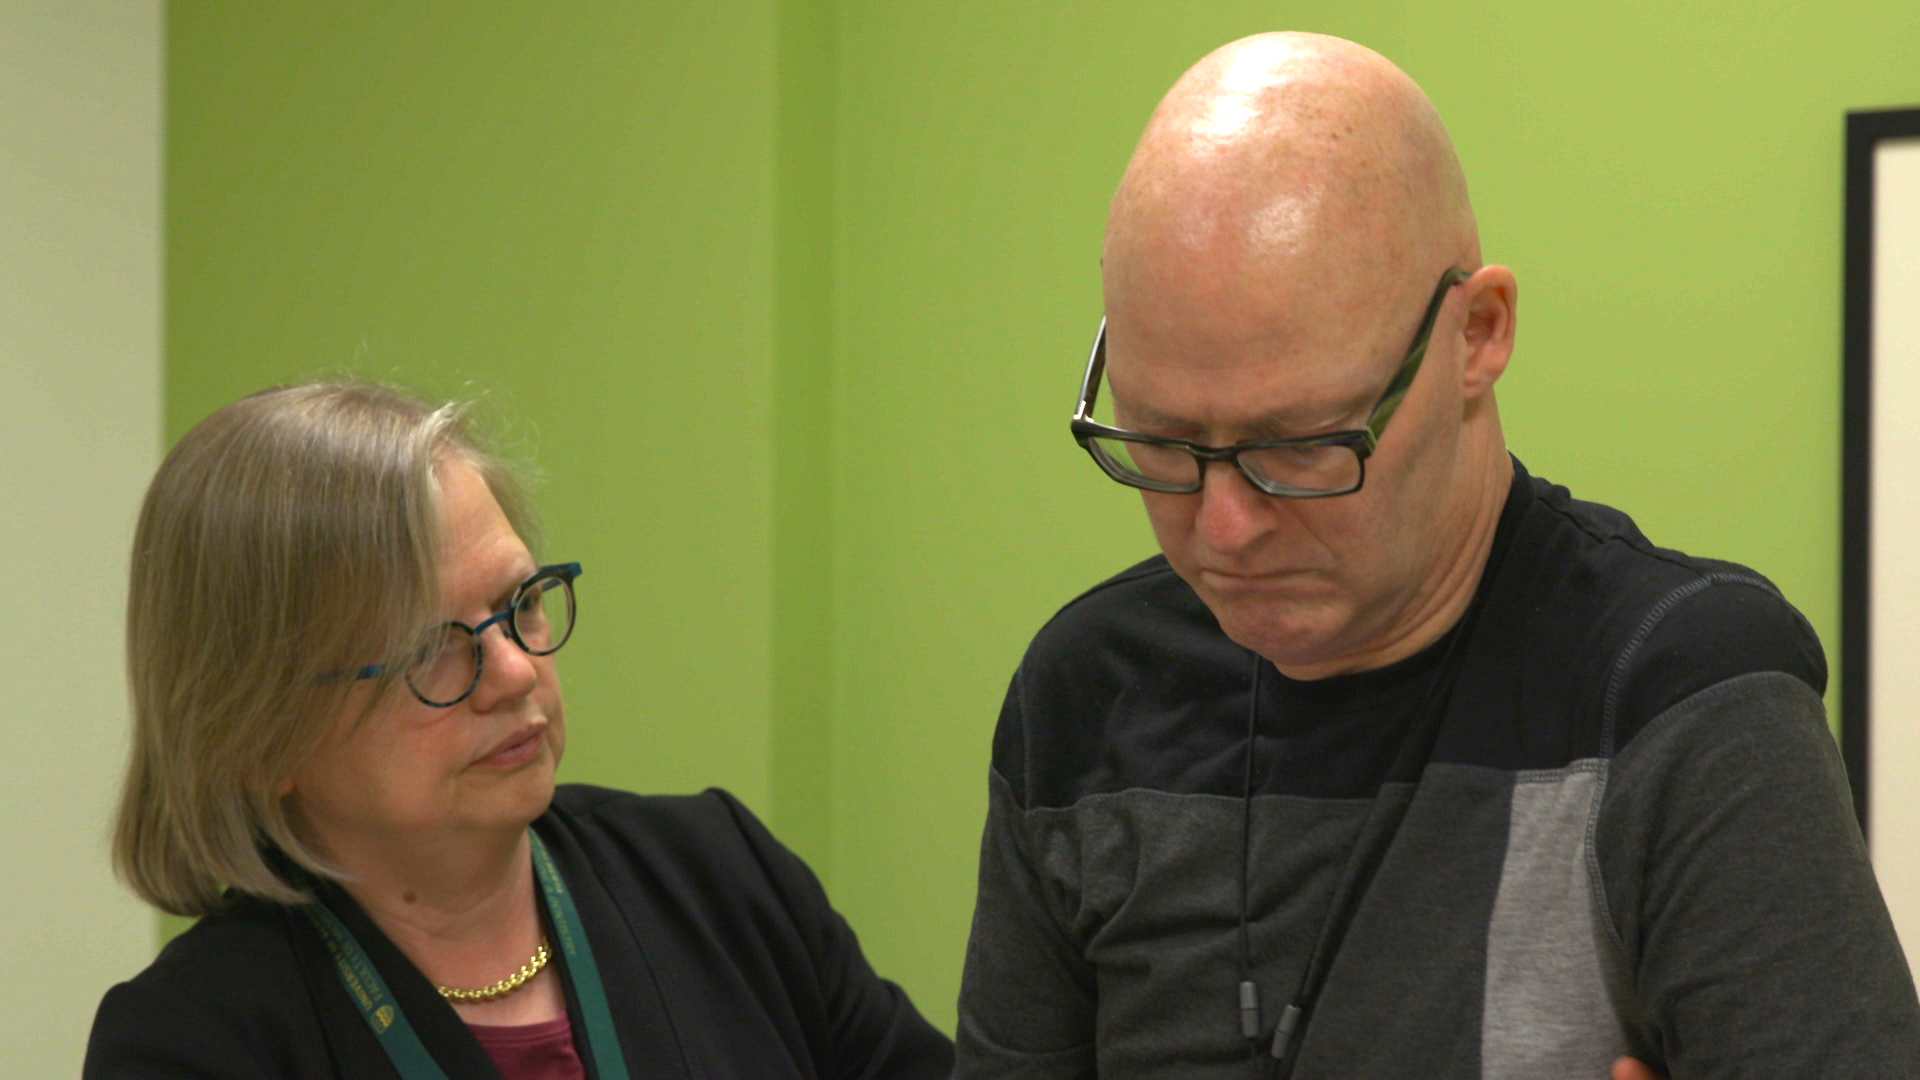 Dr. Wendy Johnston, and her patient, John Tuckwell